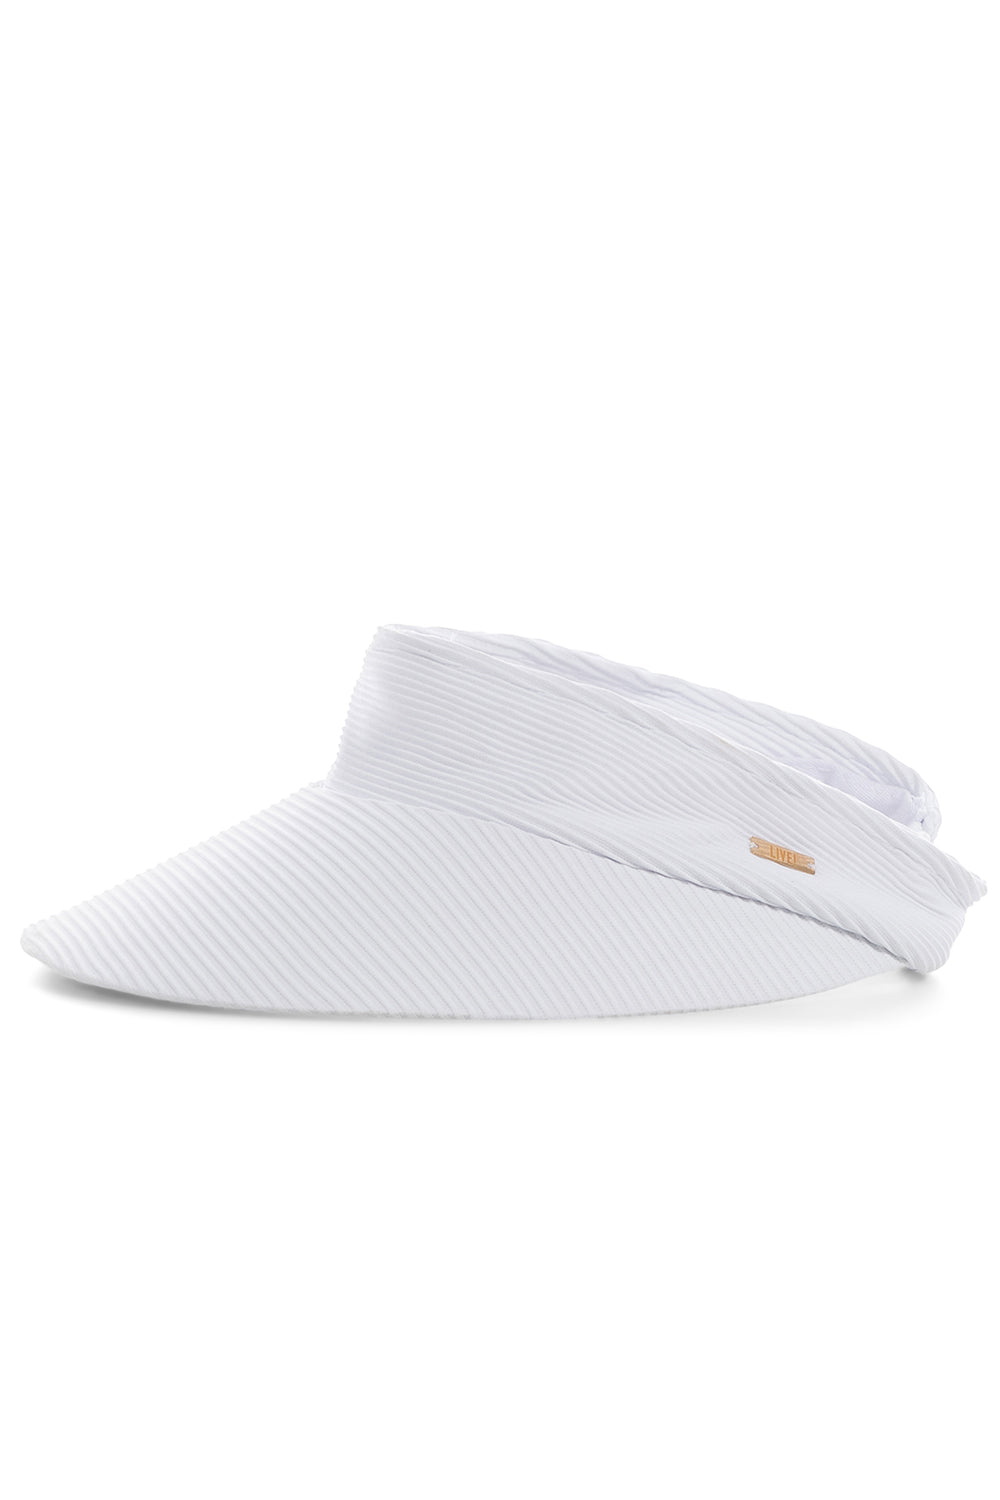 Breeze Visor 1